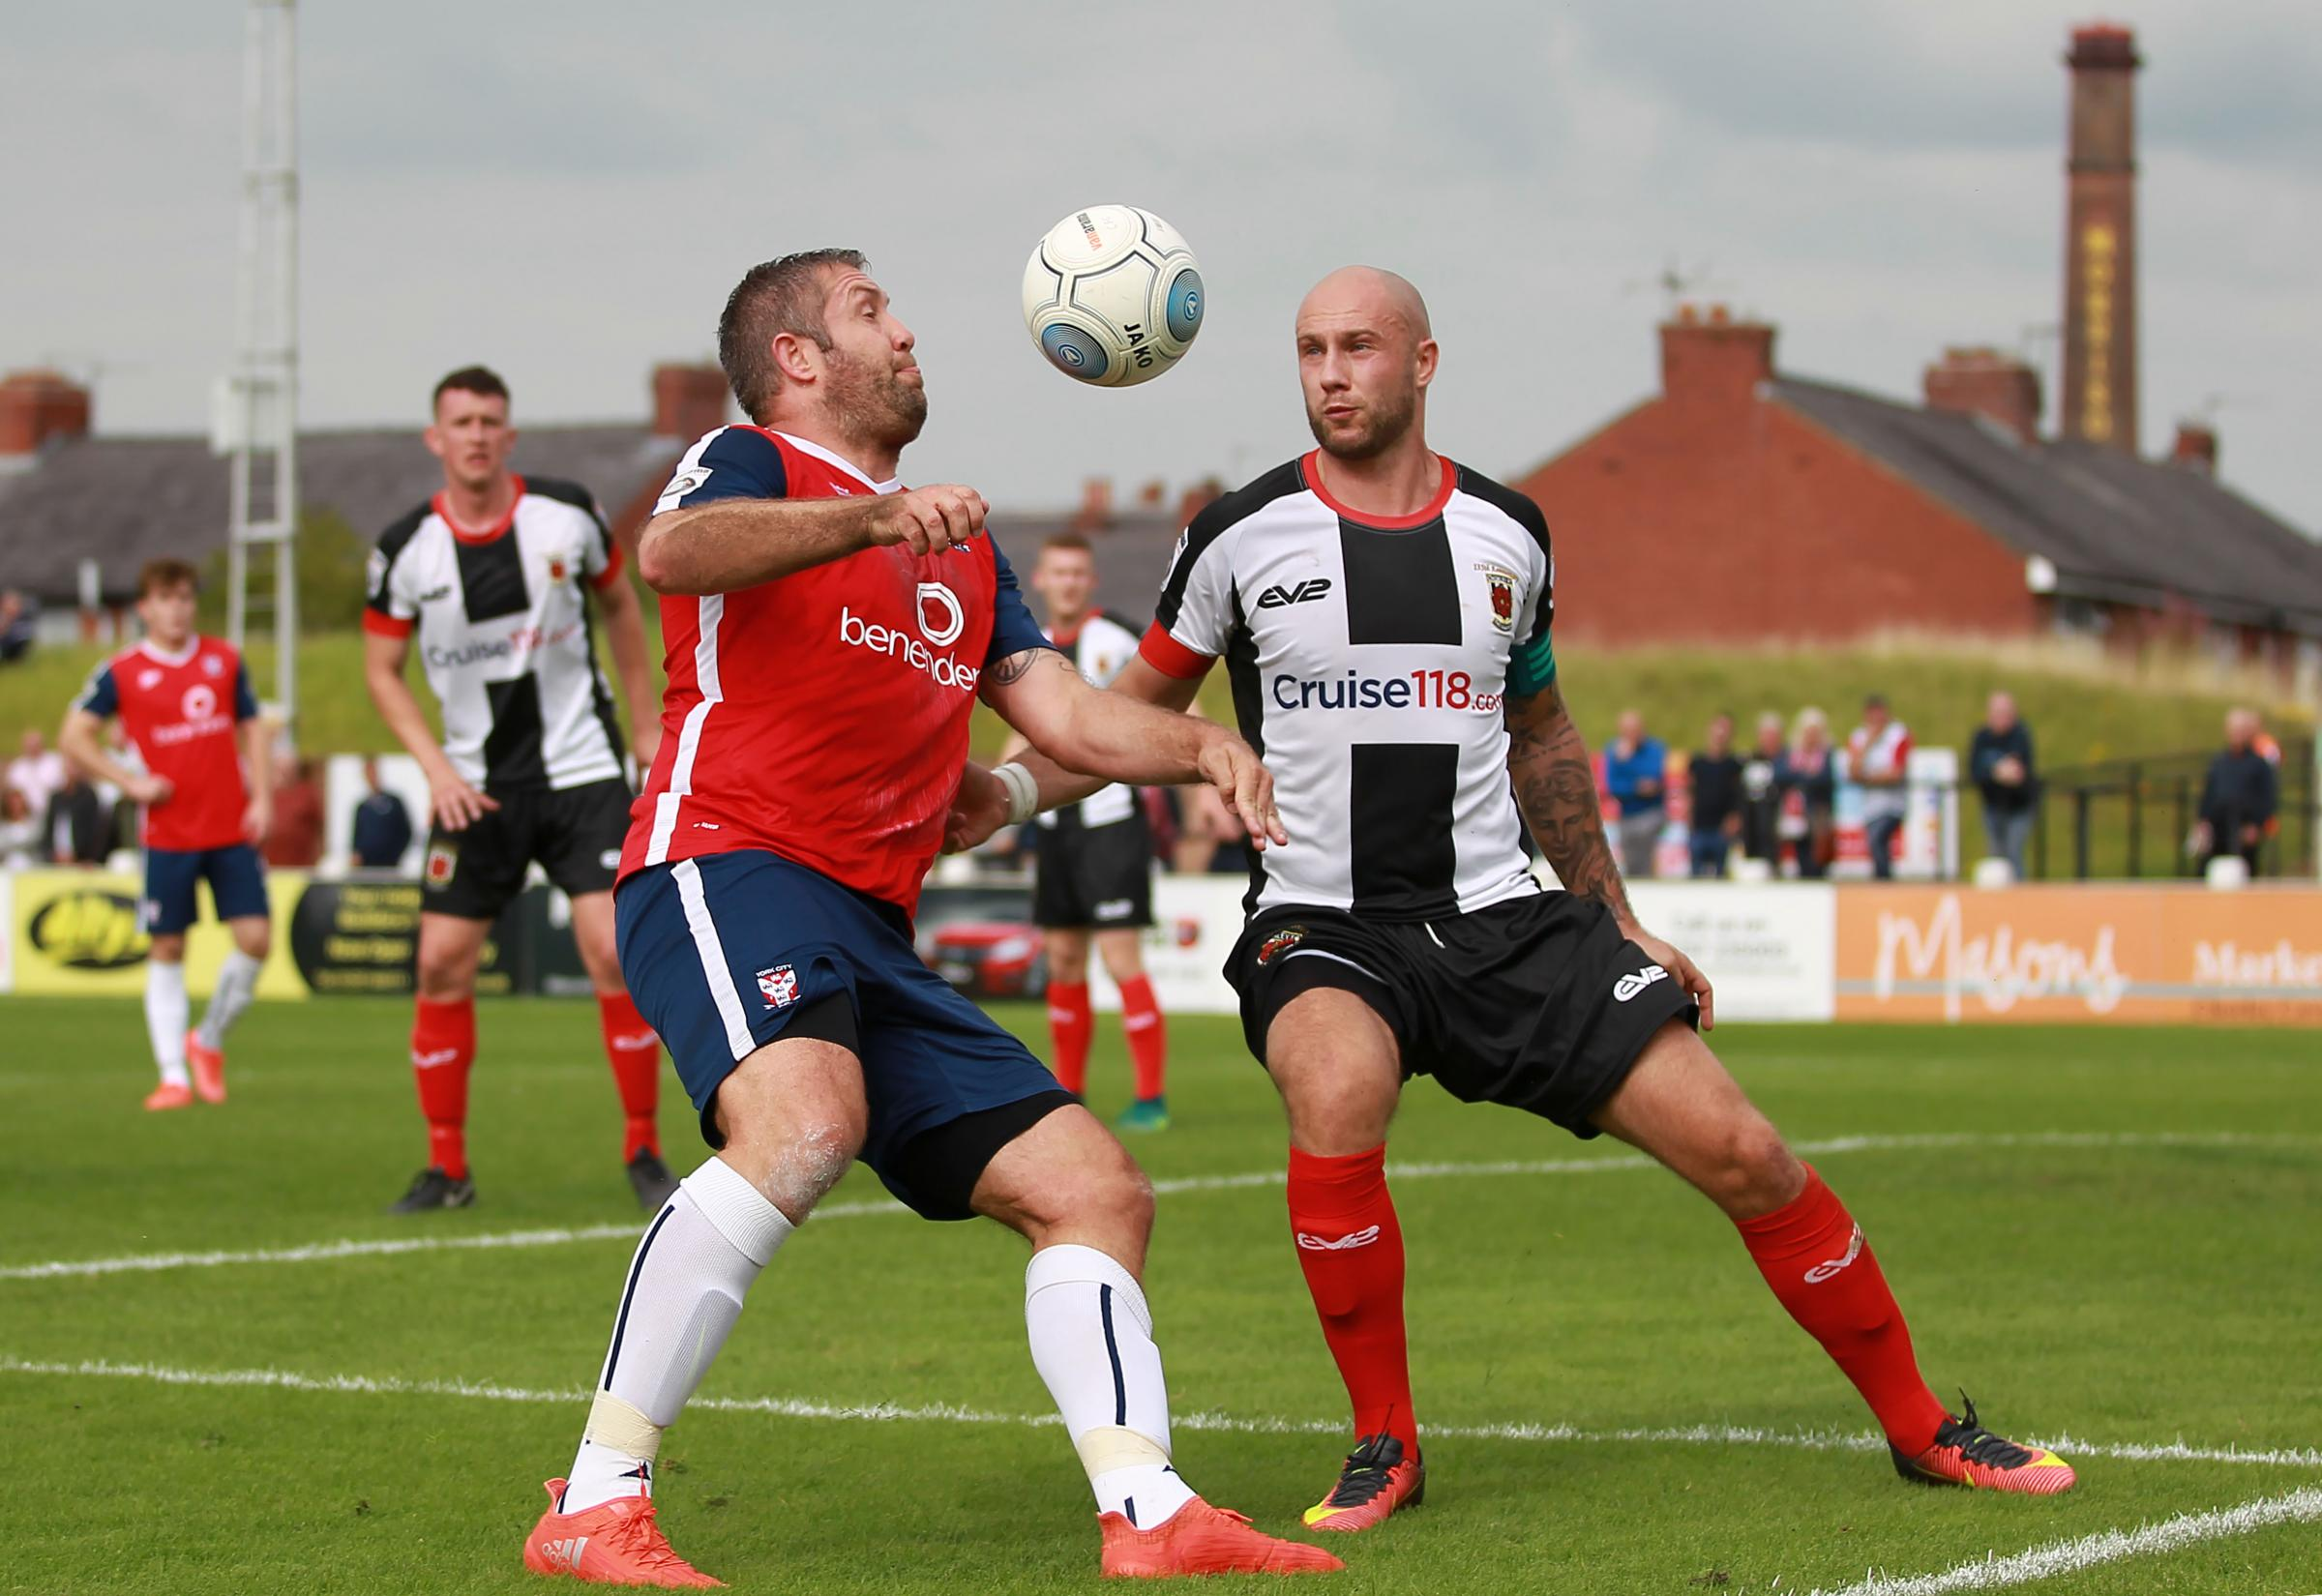 VICTORY QUEST: York City will visit Chorley's Victory Park on the opening day of the National League North season. Jon Parkin is pictured trying to get the better of Magpies captain Andy Teague in the corresponding fixture last September, which finish